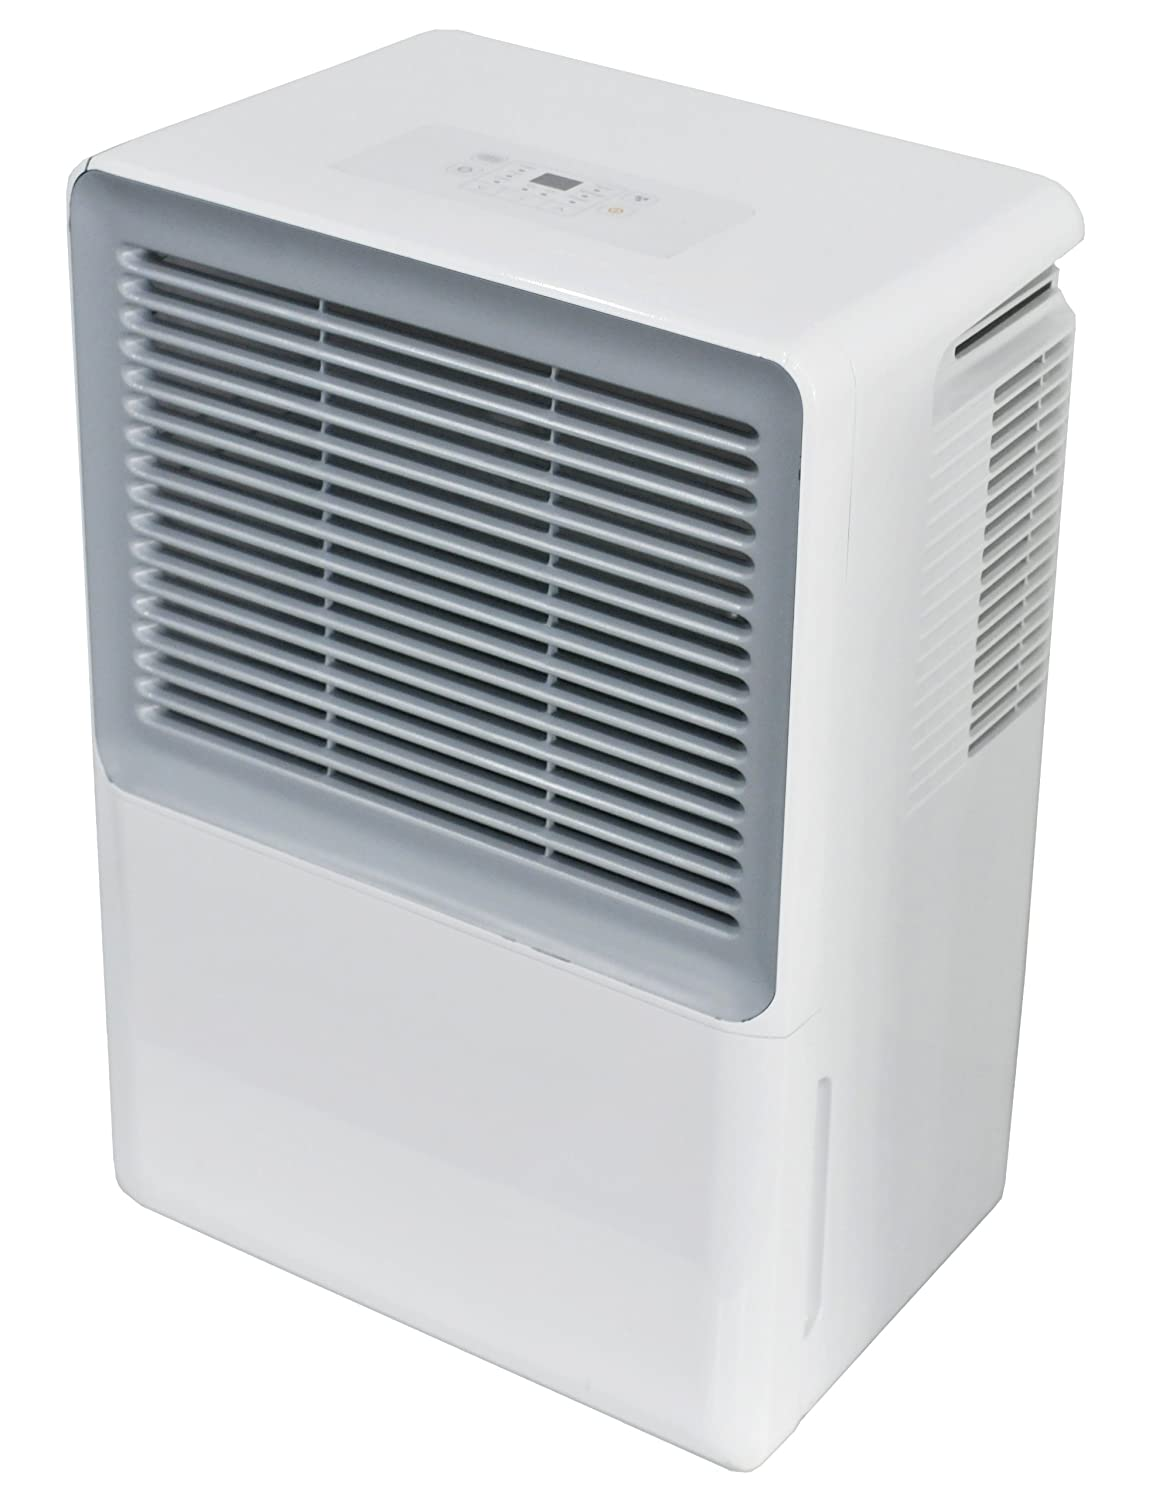 spt sd 31e 30 pint dehumidifier check discounted price on amazon 4 2  #2D3437